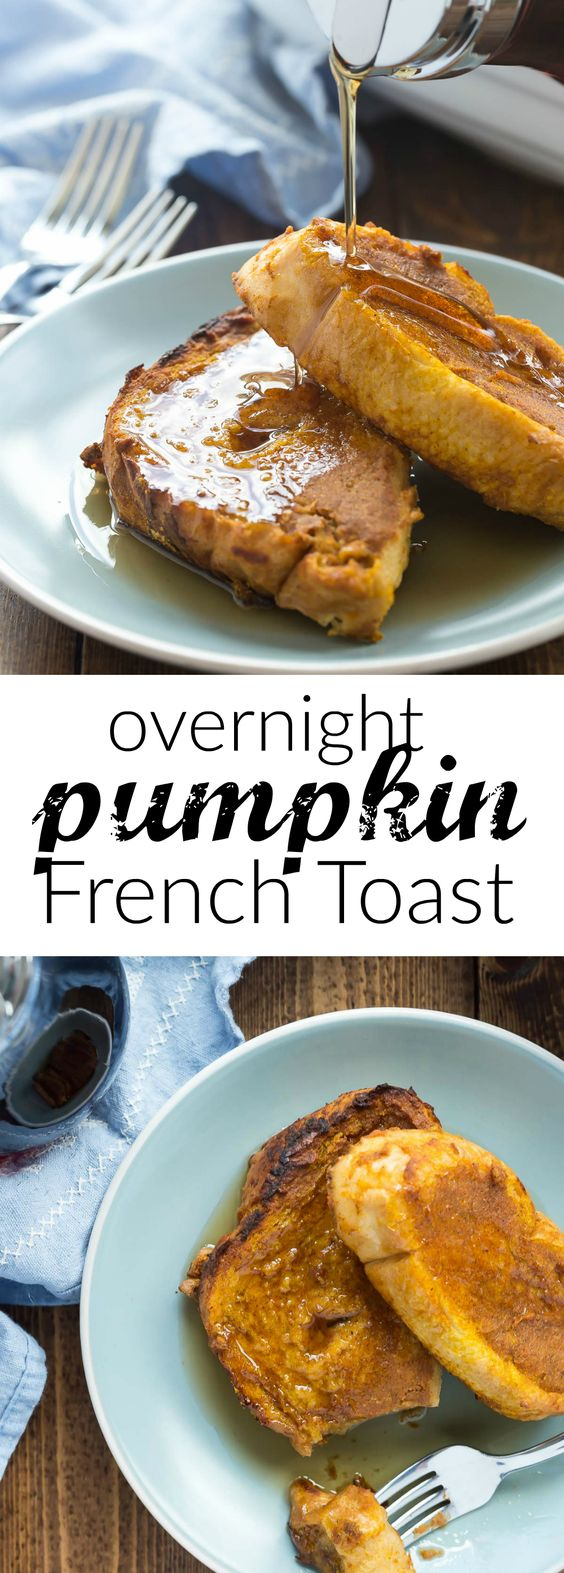 THIS is the fall breakfast you need! This Overnight Pumpkin French Toast is so easy — you can make ahead for holiday gatherings and brunches and bake together in one pan! Naturally sweetened and made with real ingredients.